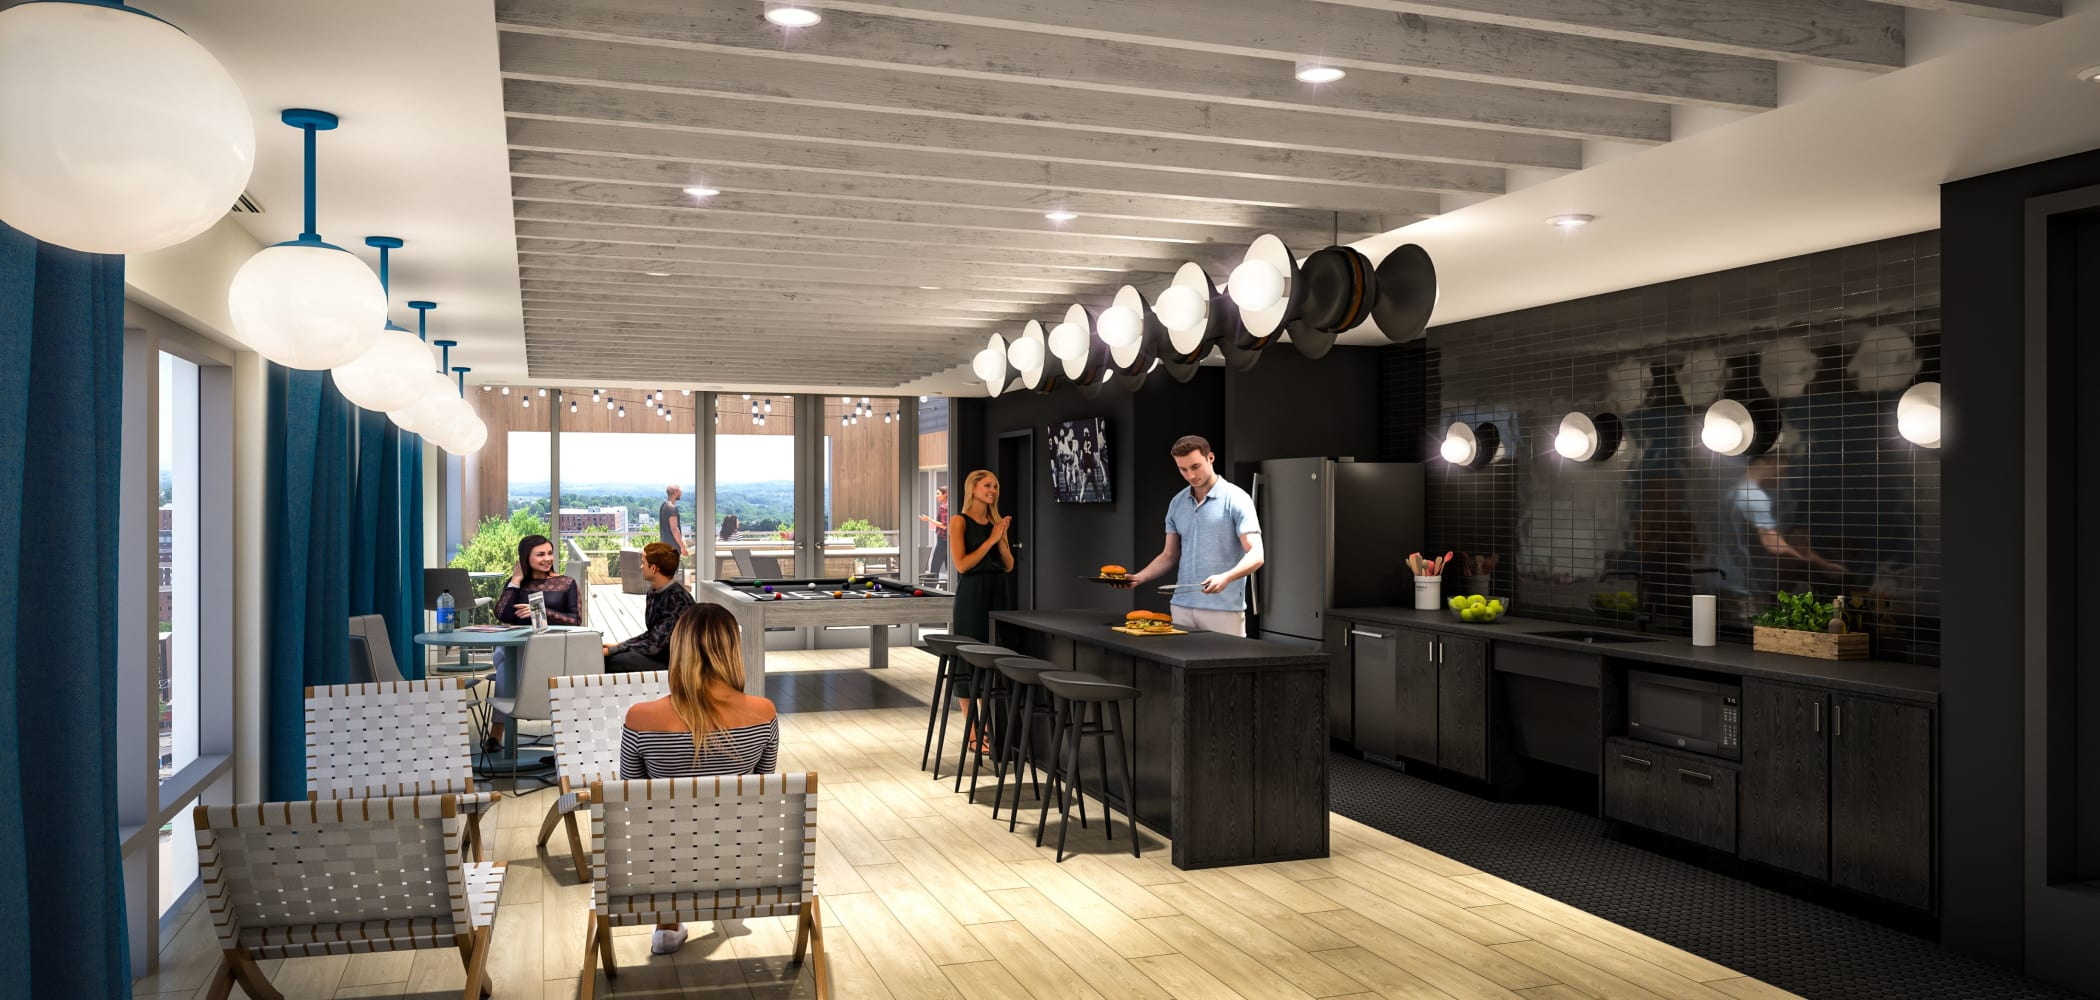 Penthouse community kitchen at HERE State College in State College, Pennsylvania